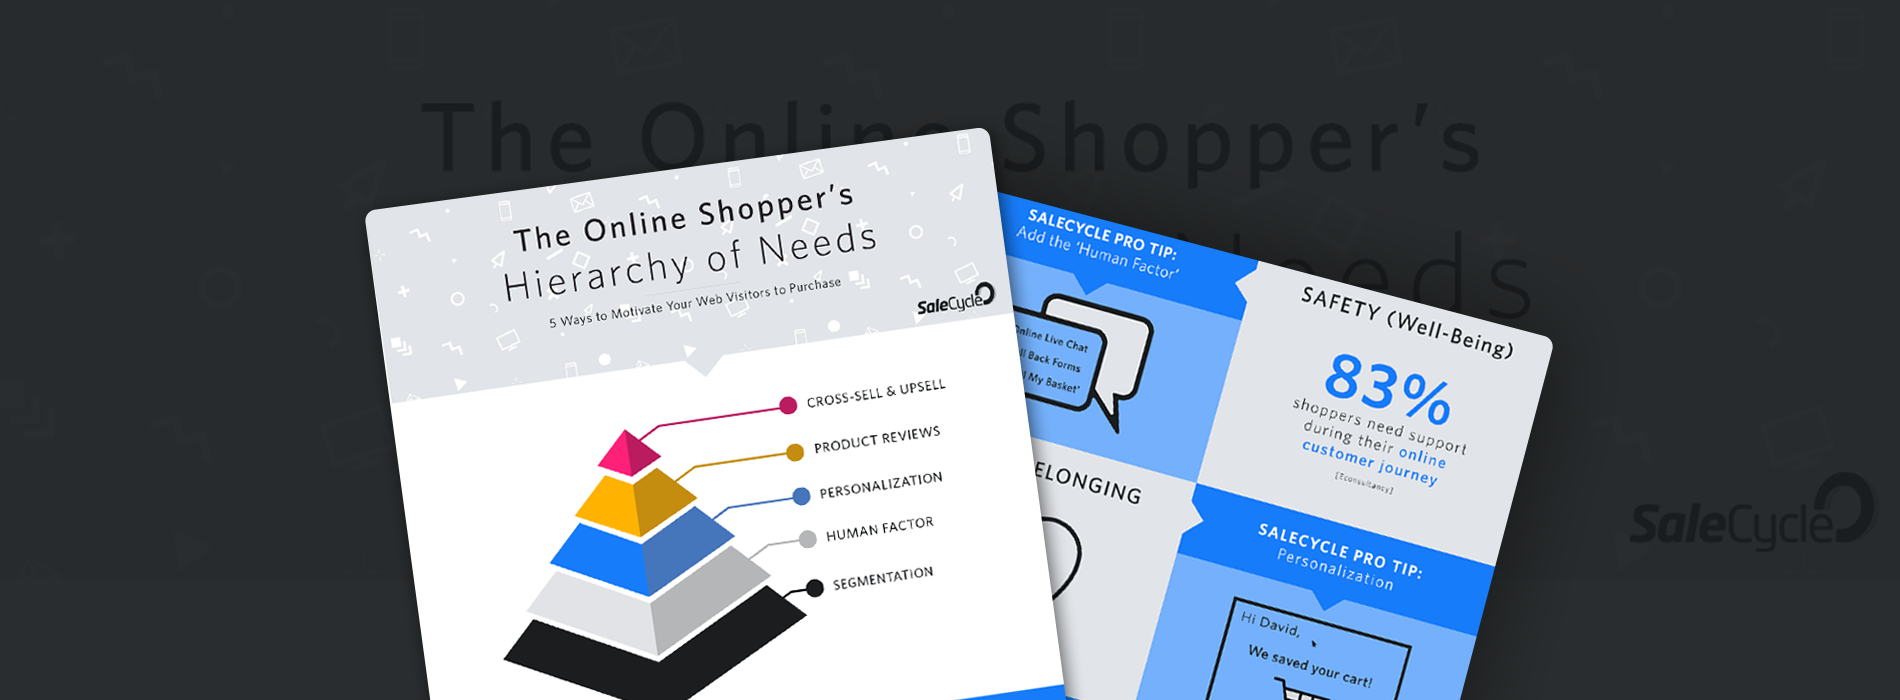 [Infographic] The Online Shopper's Hierarchy of Needs